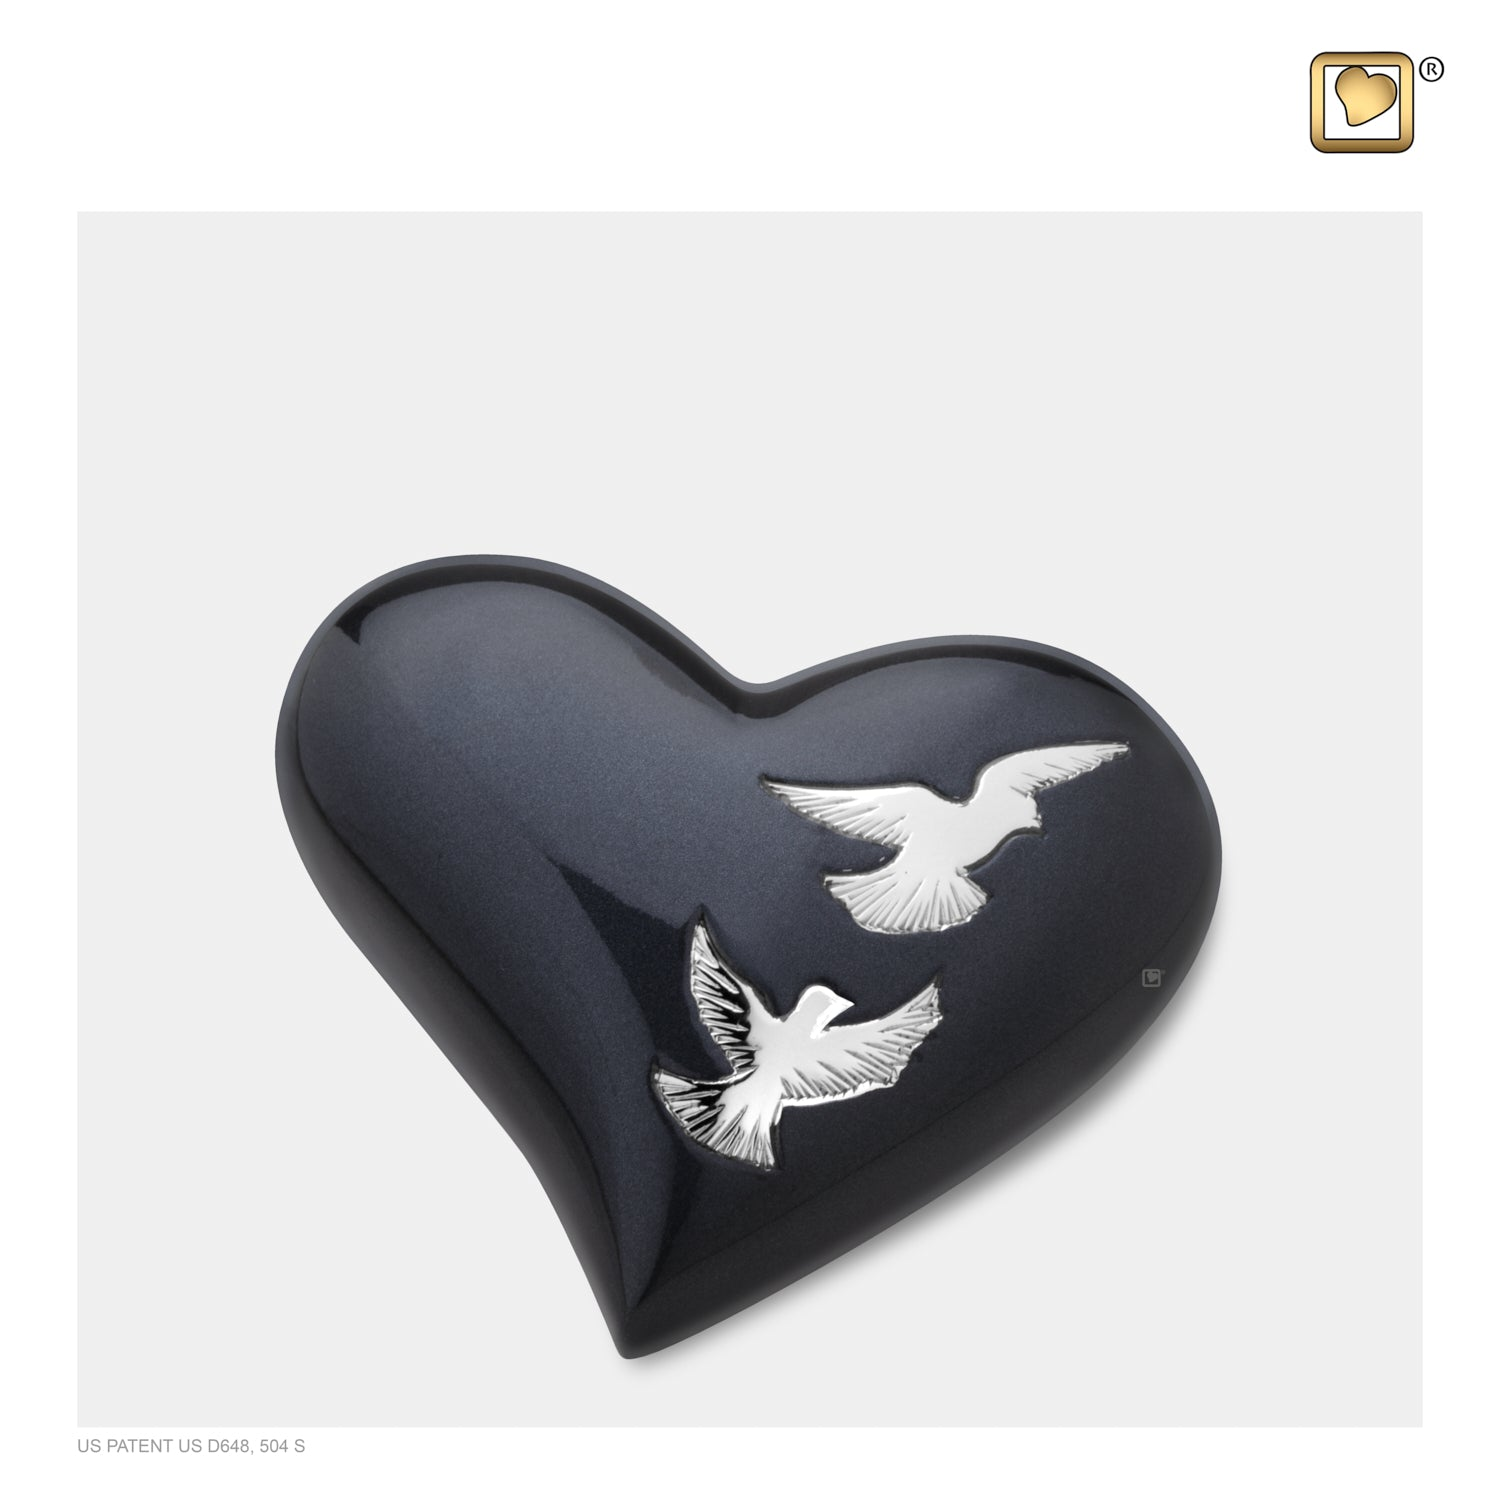 Heart Nirvana Adieu Cremation Urn